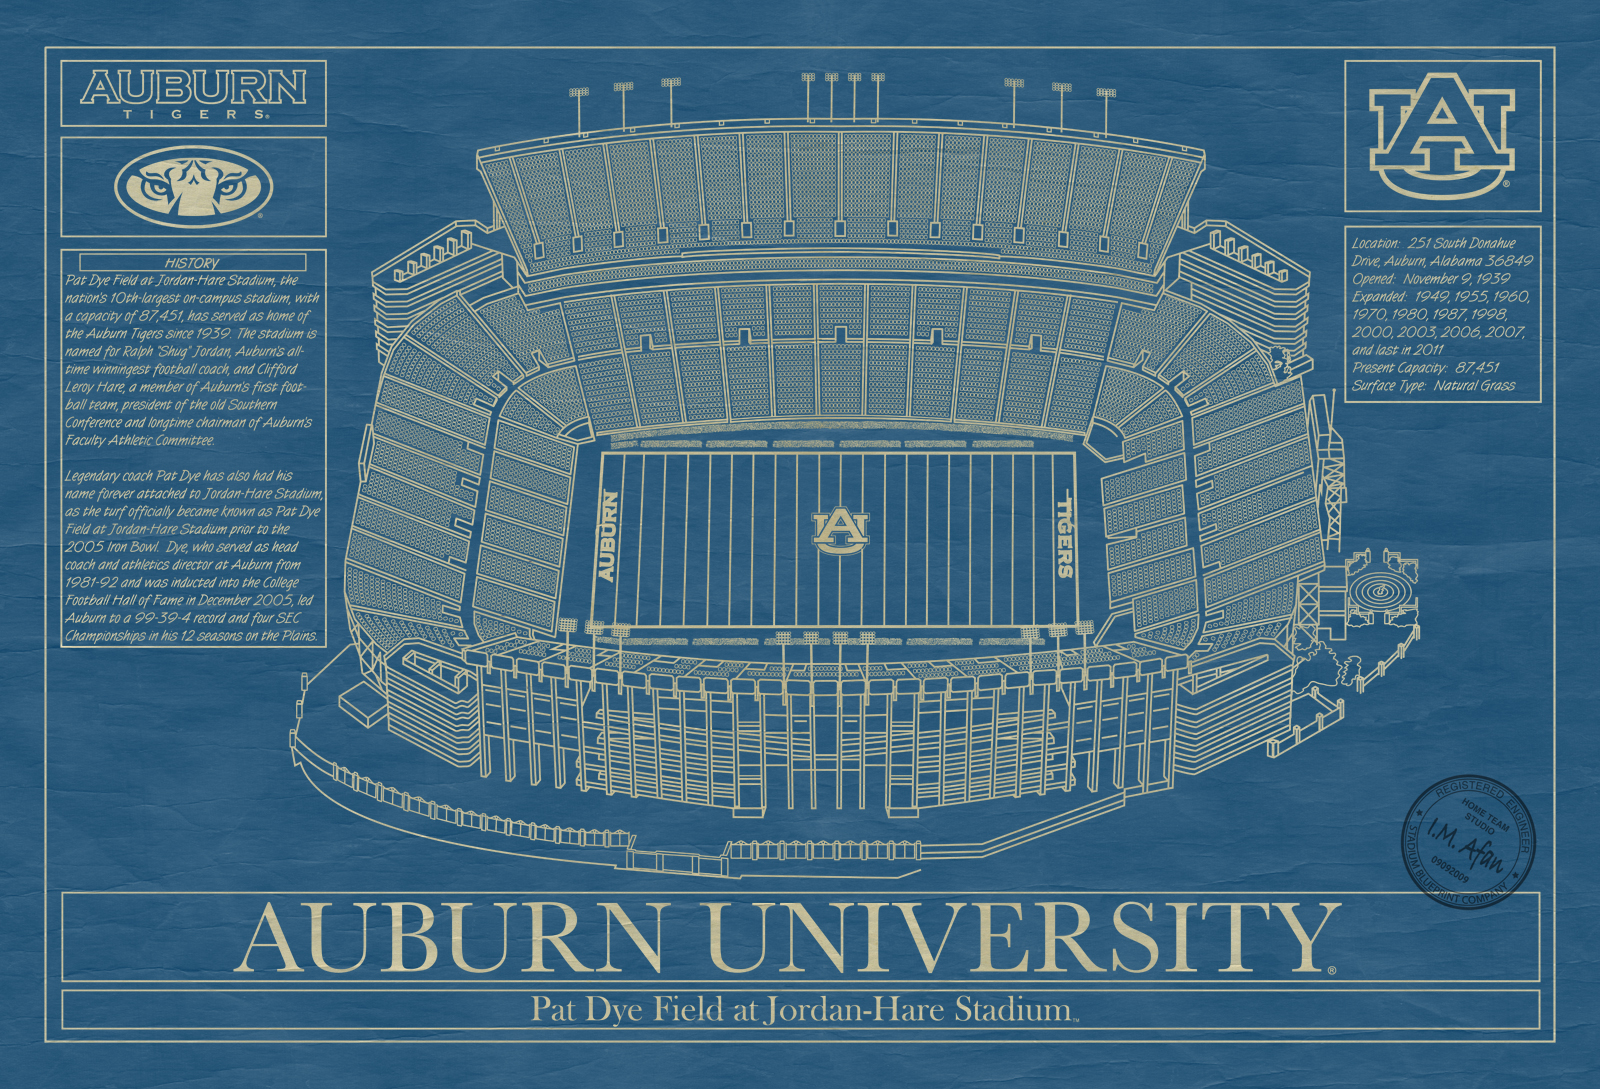 Auburn university archives stadium blueprint company auburn university jordan hare stadium blueprint art malvernweather Image collections